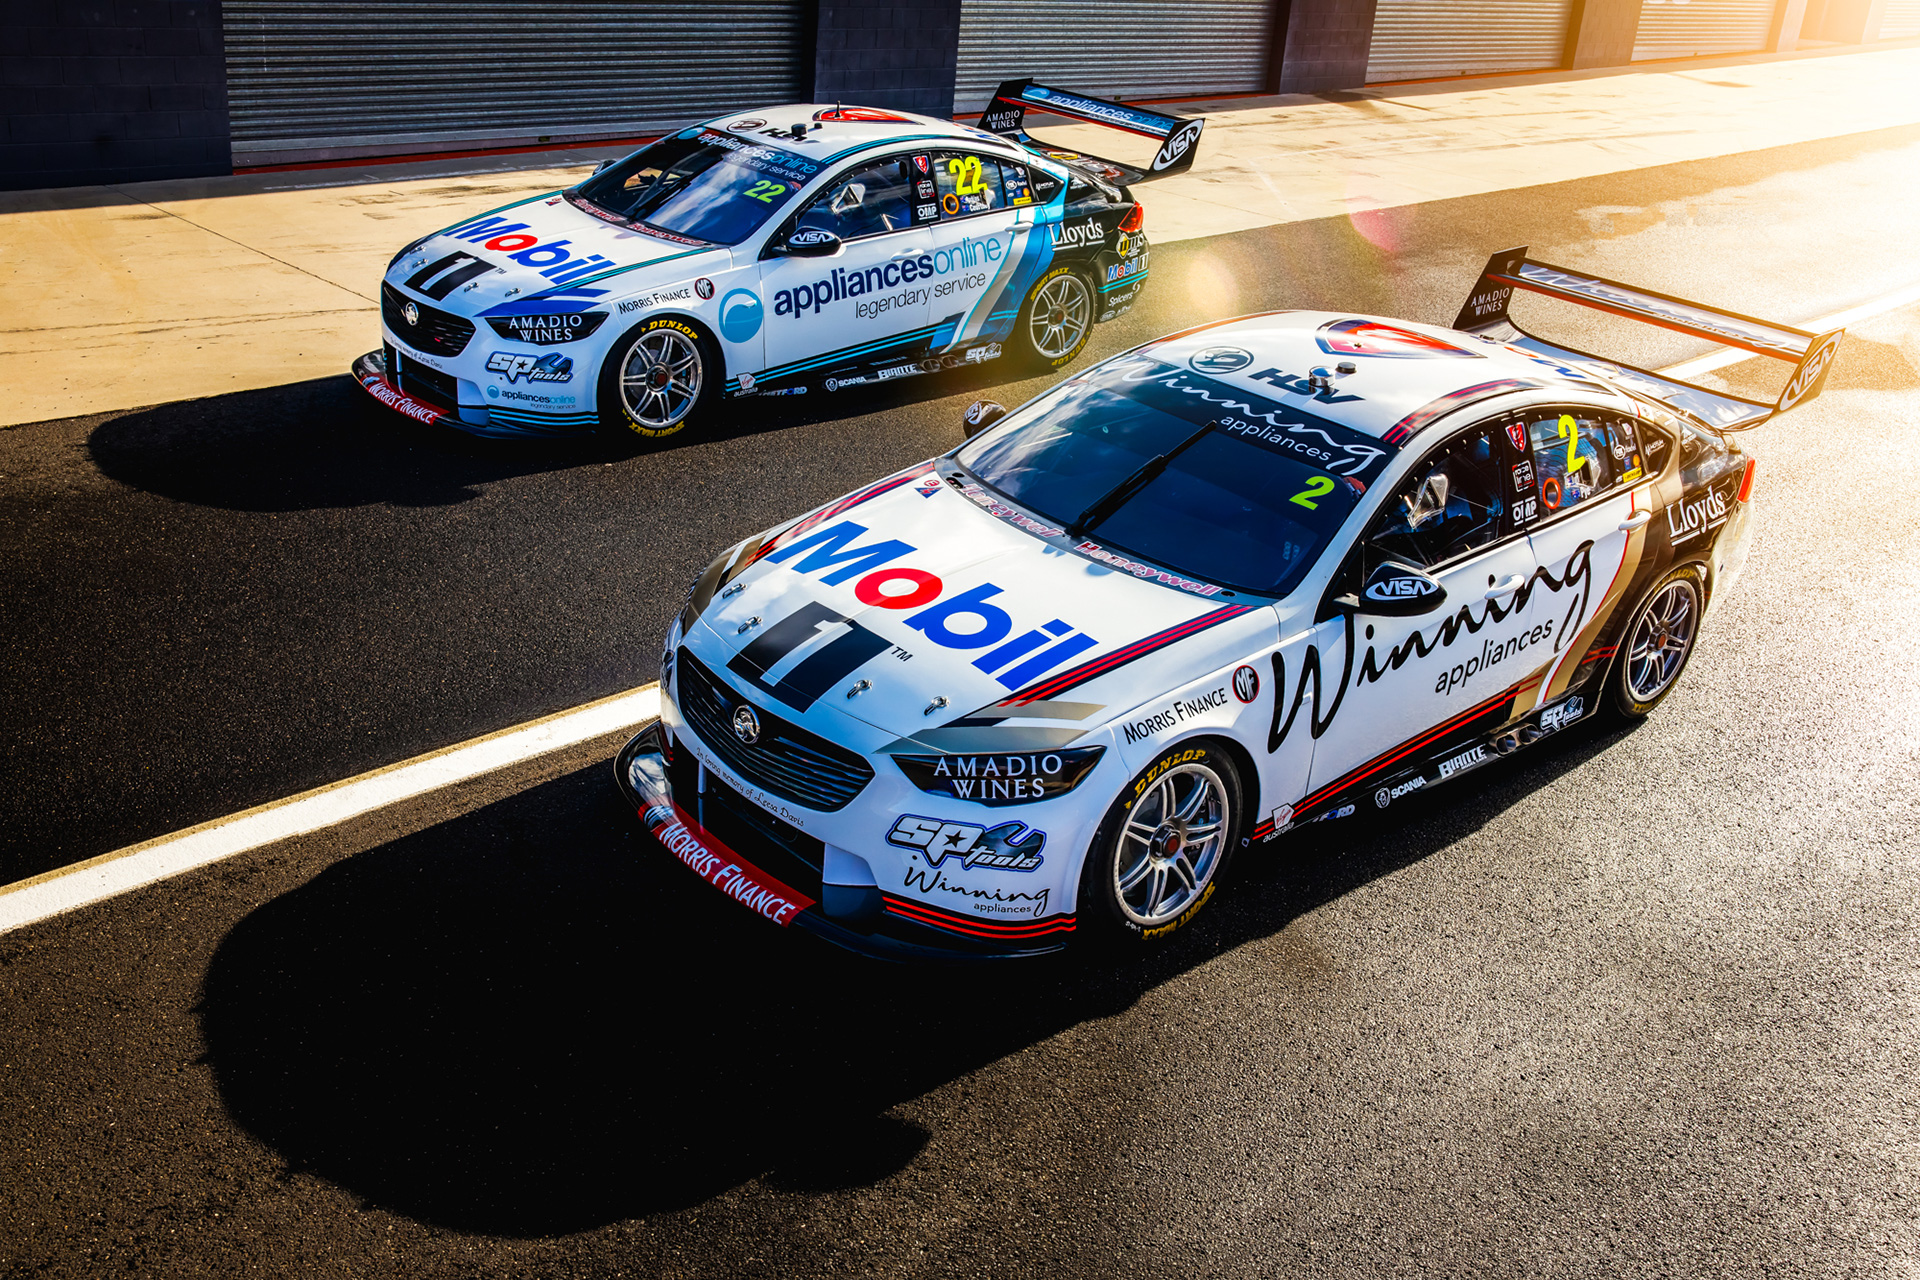 The two new liveries at Bathurst.